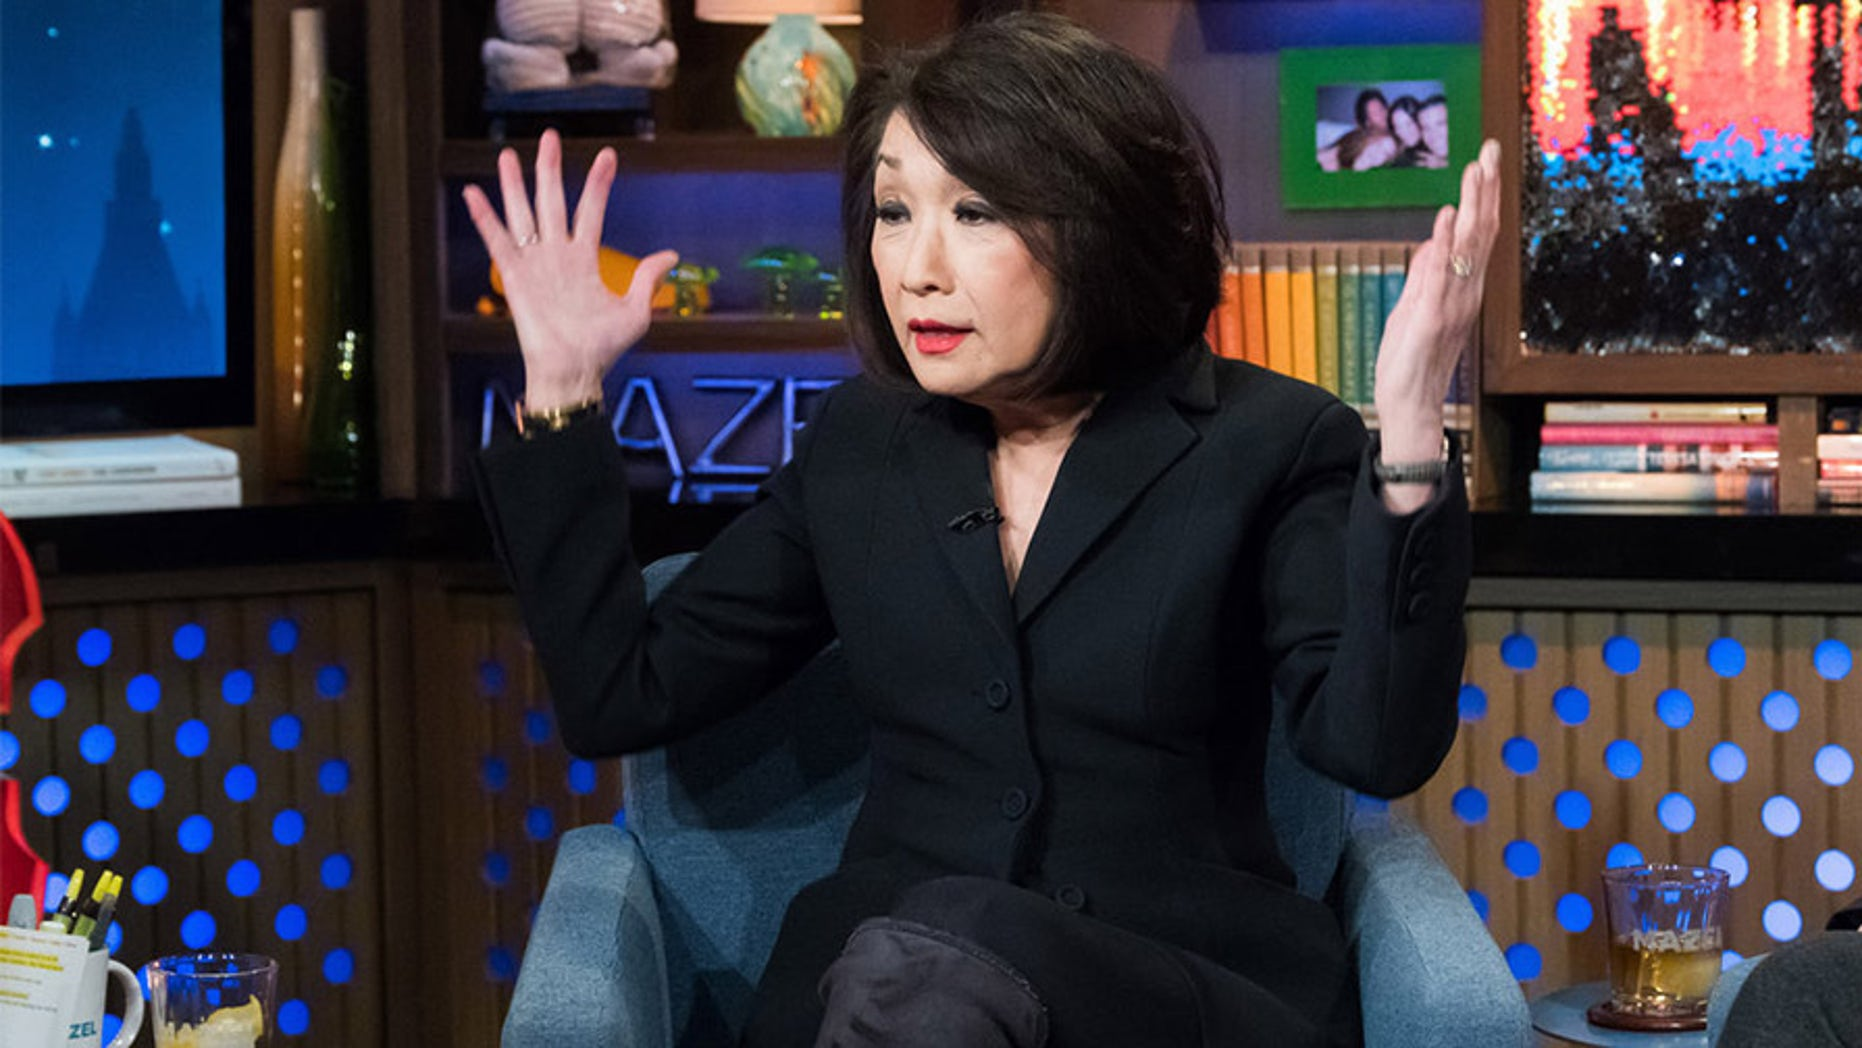 """Chung appeared on Bravo's """"Watch What Happens Live With Andy Cohen"""" on Feb. 8, 2018. She started as a correspondent for """"CBS Evening News"""" in the '70s and has since held positions at NBC, ABC, CNN and MSNBC."""